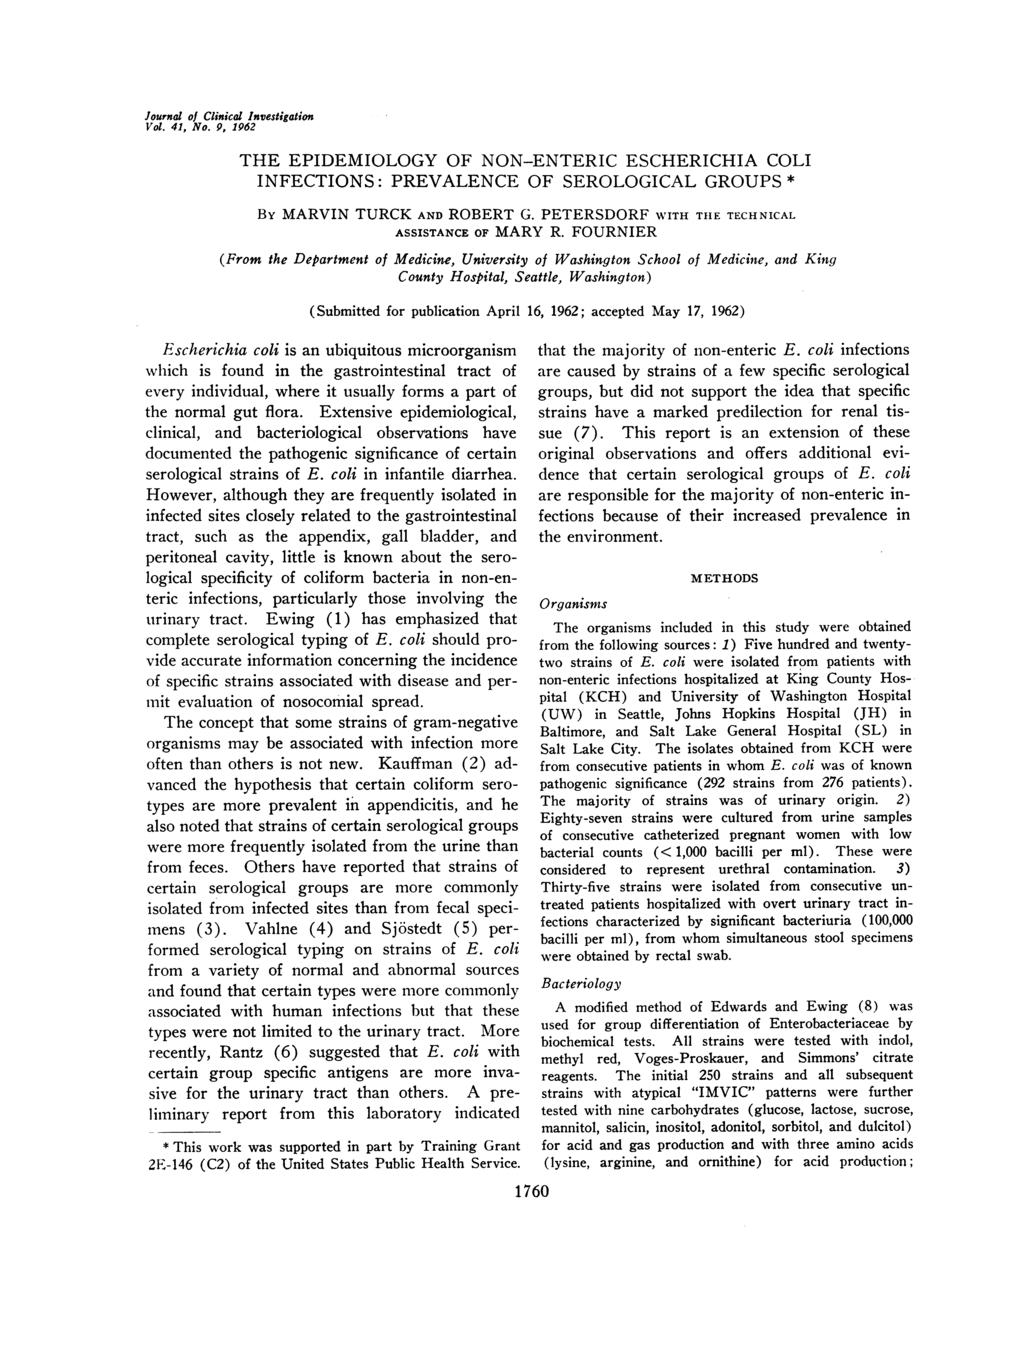 Journal of Clinical Investigation Vol. 41, No. 9, 1962 THE EPIDEMIOLOGY OF NON-ENTERIC ESCHERICHIA COLI INFECTIONS: PREVALENCE OF SEROLOGICAL GROUPS * By MARVIN TURCK AND ROBERT G.